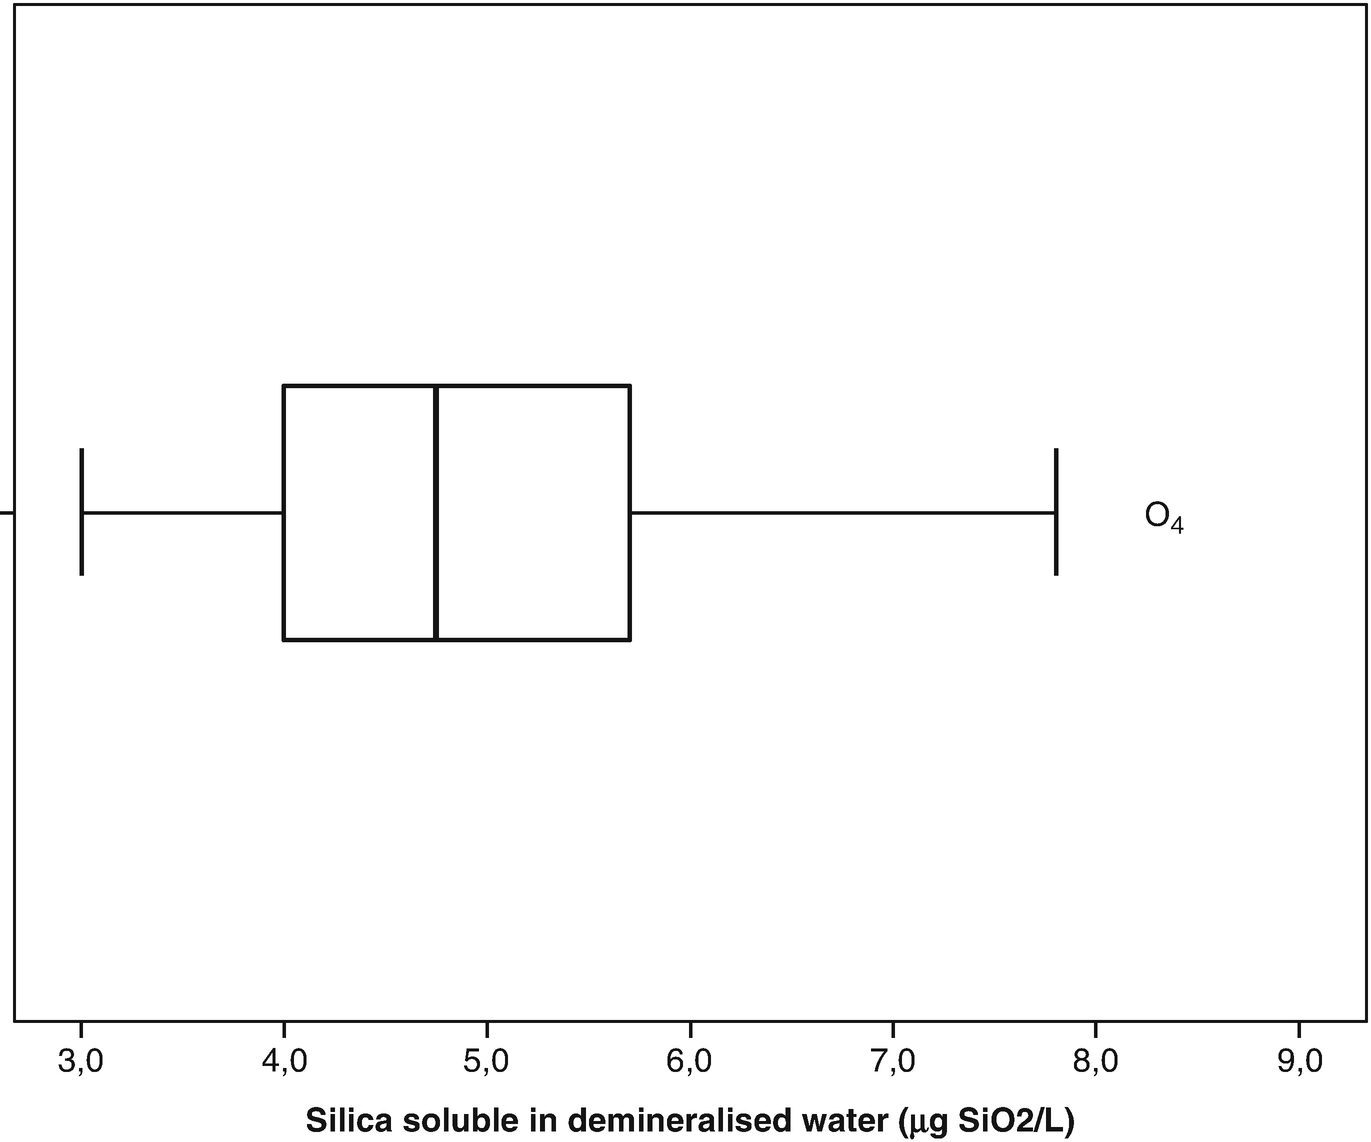 Nonparametric Individual Control Charts for Silica in Water